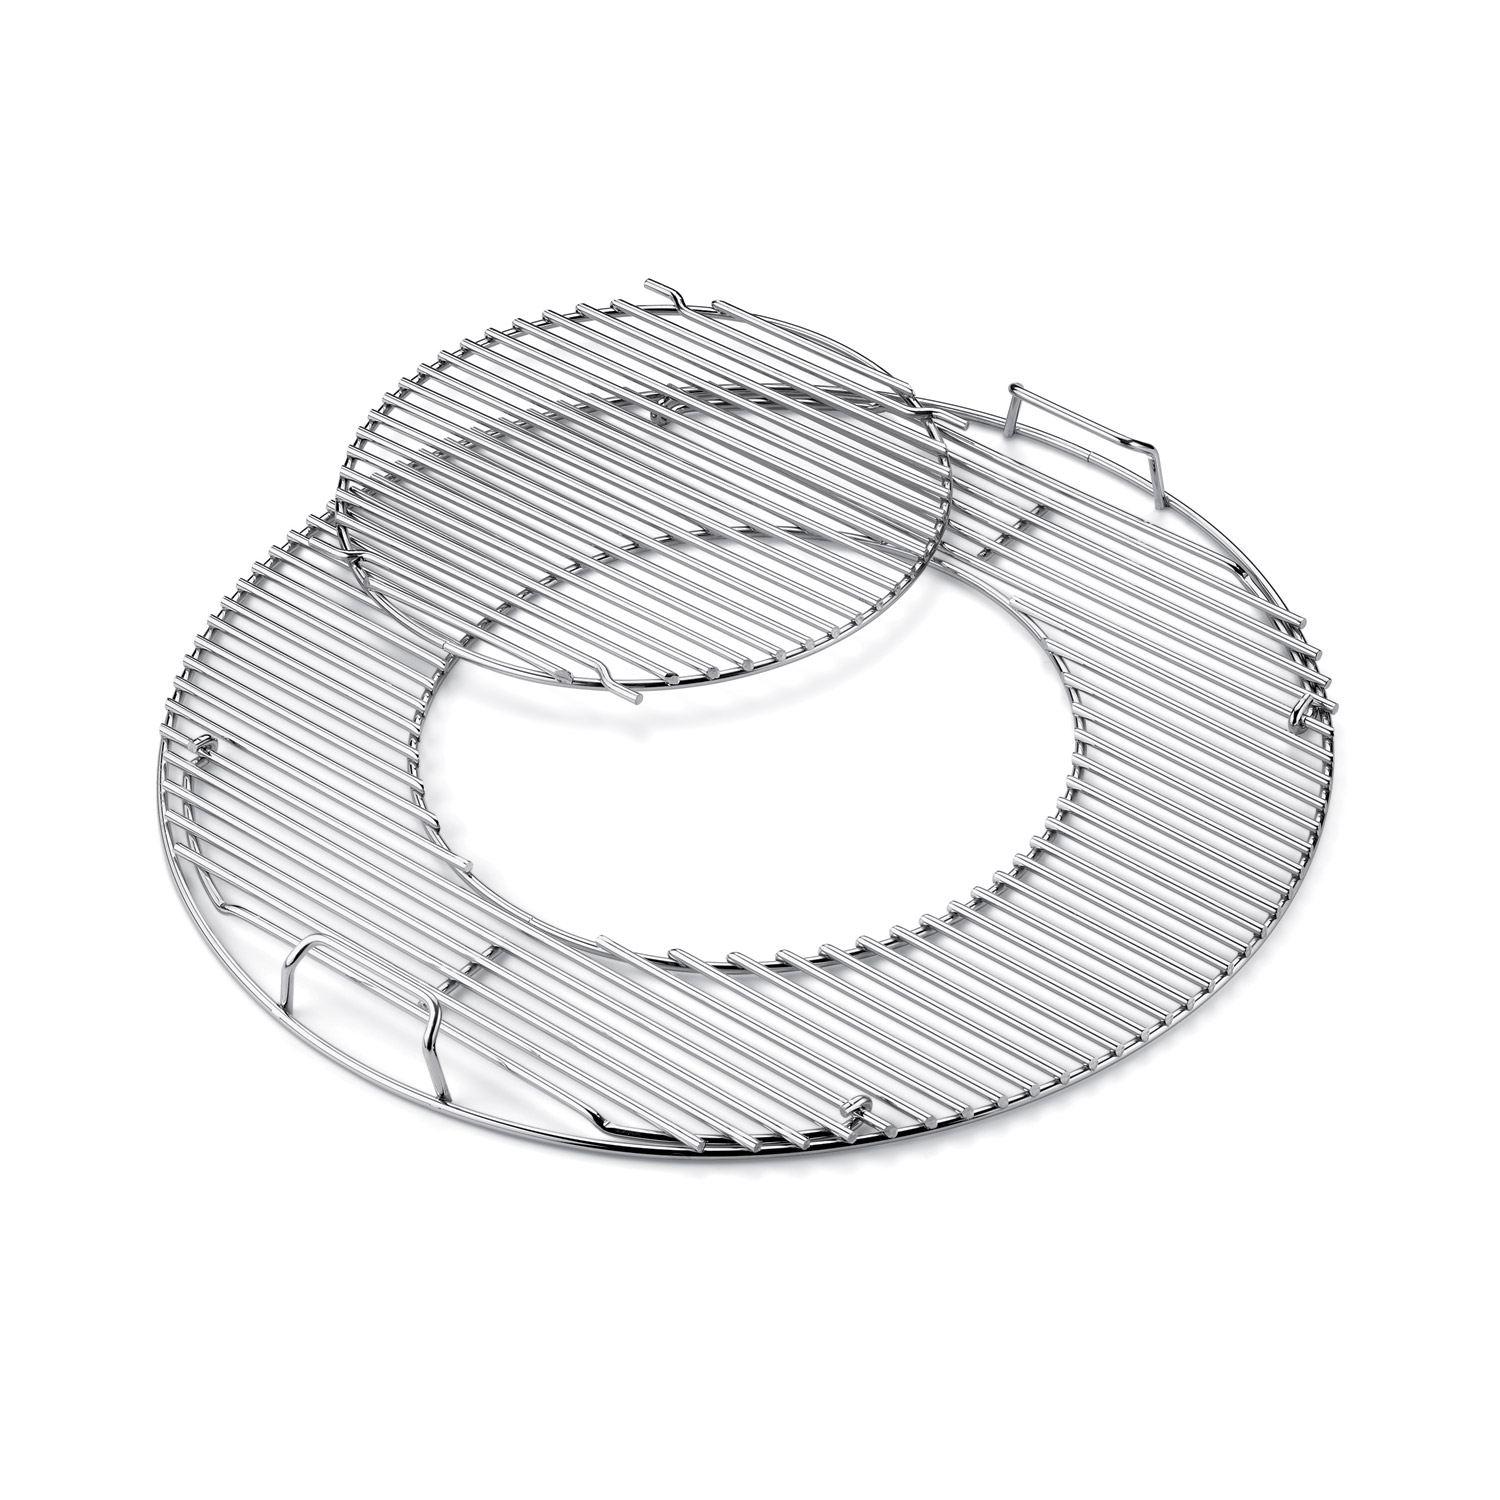 Gourmet BBQ System Hinged Grate Set Cooking Grates